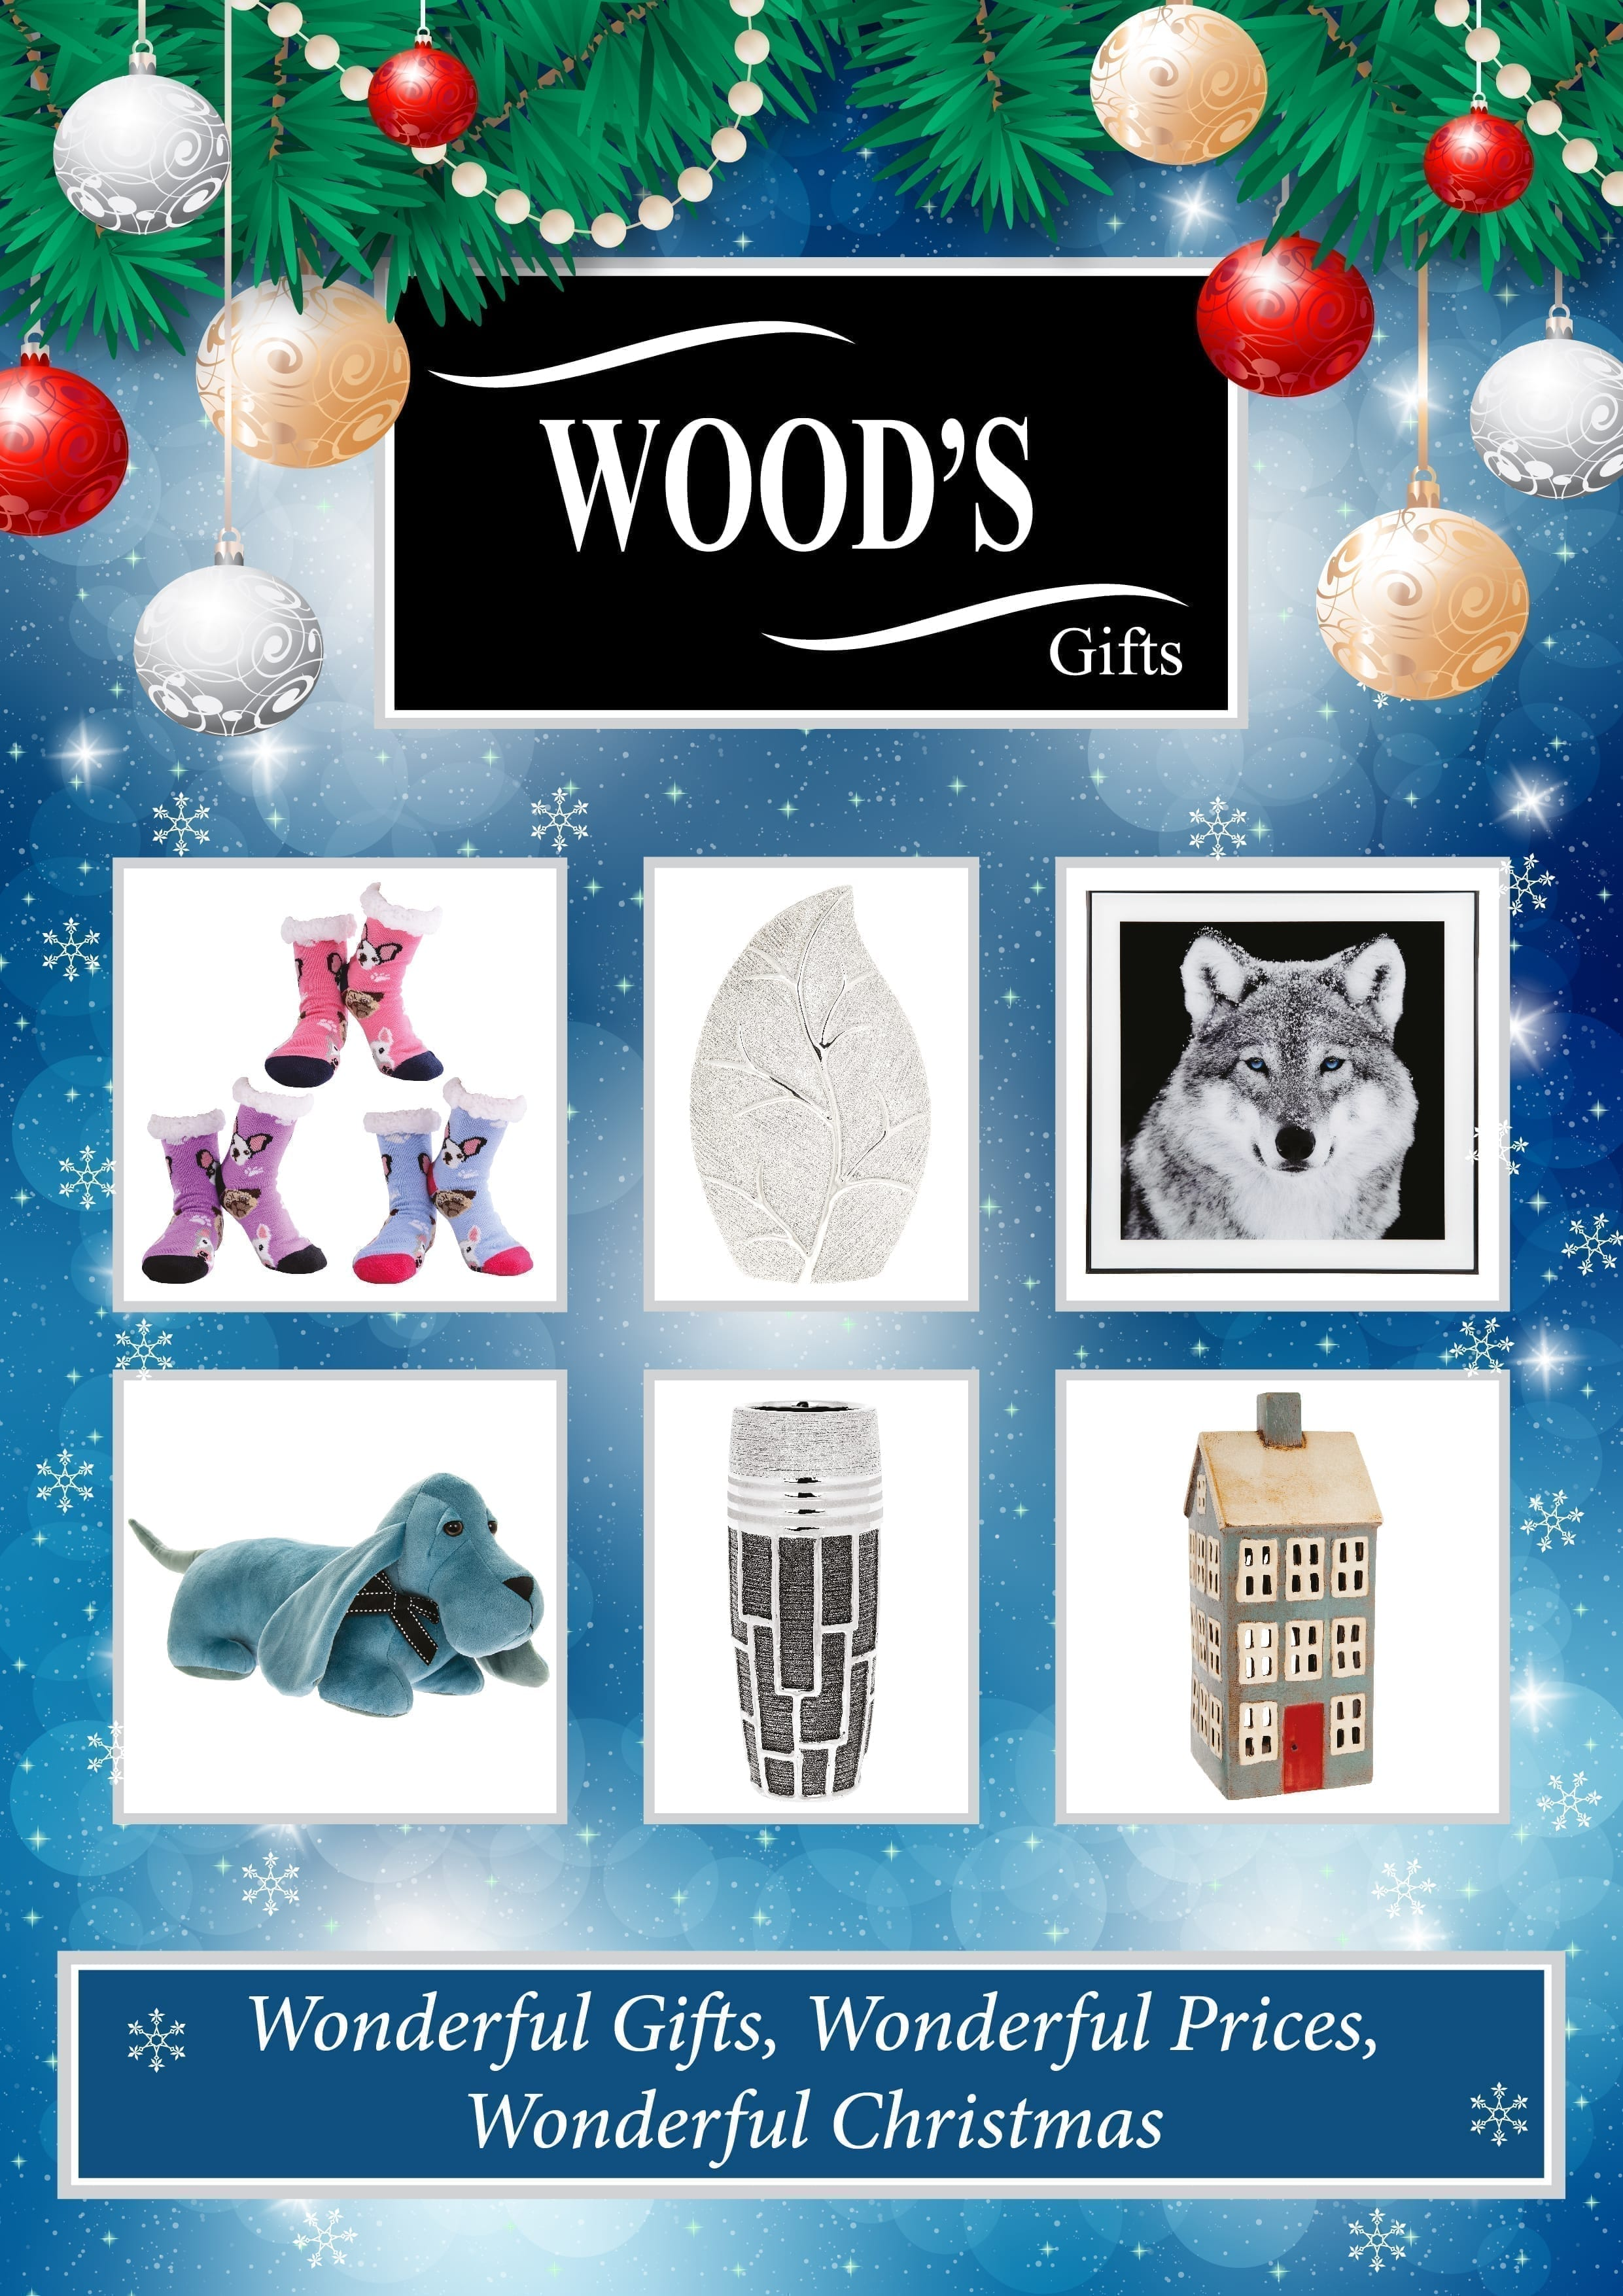 Woods Gifts